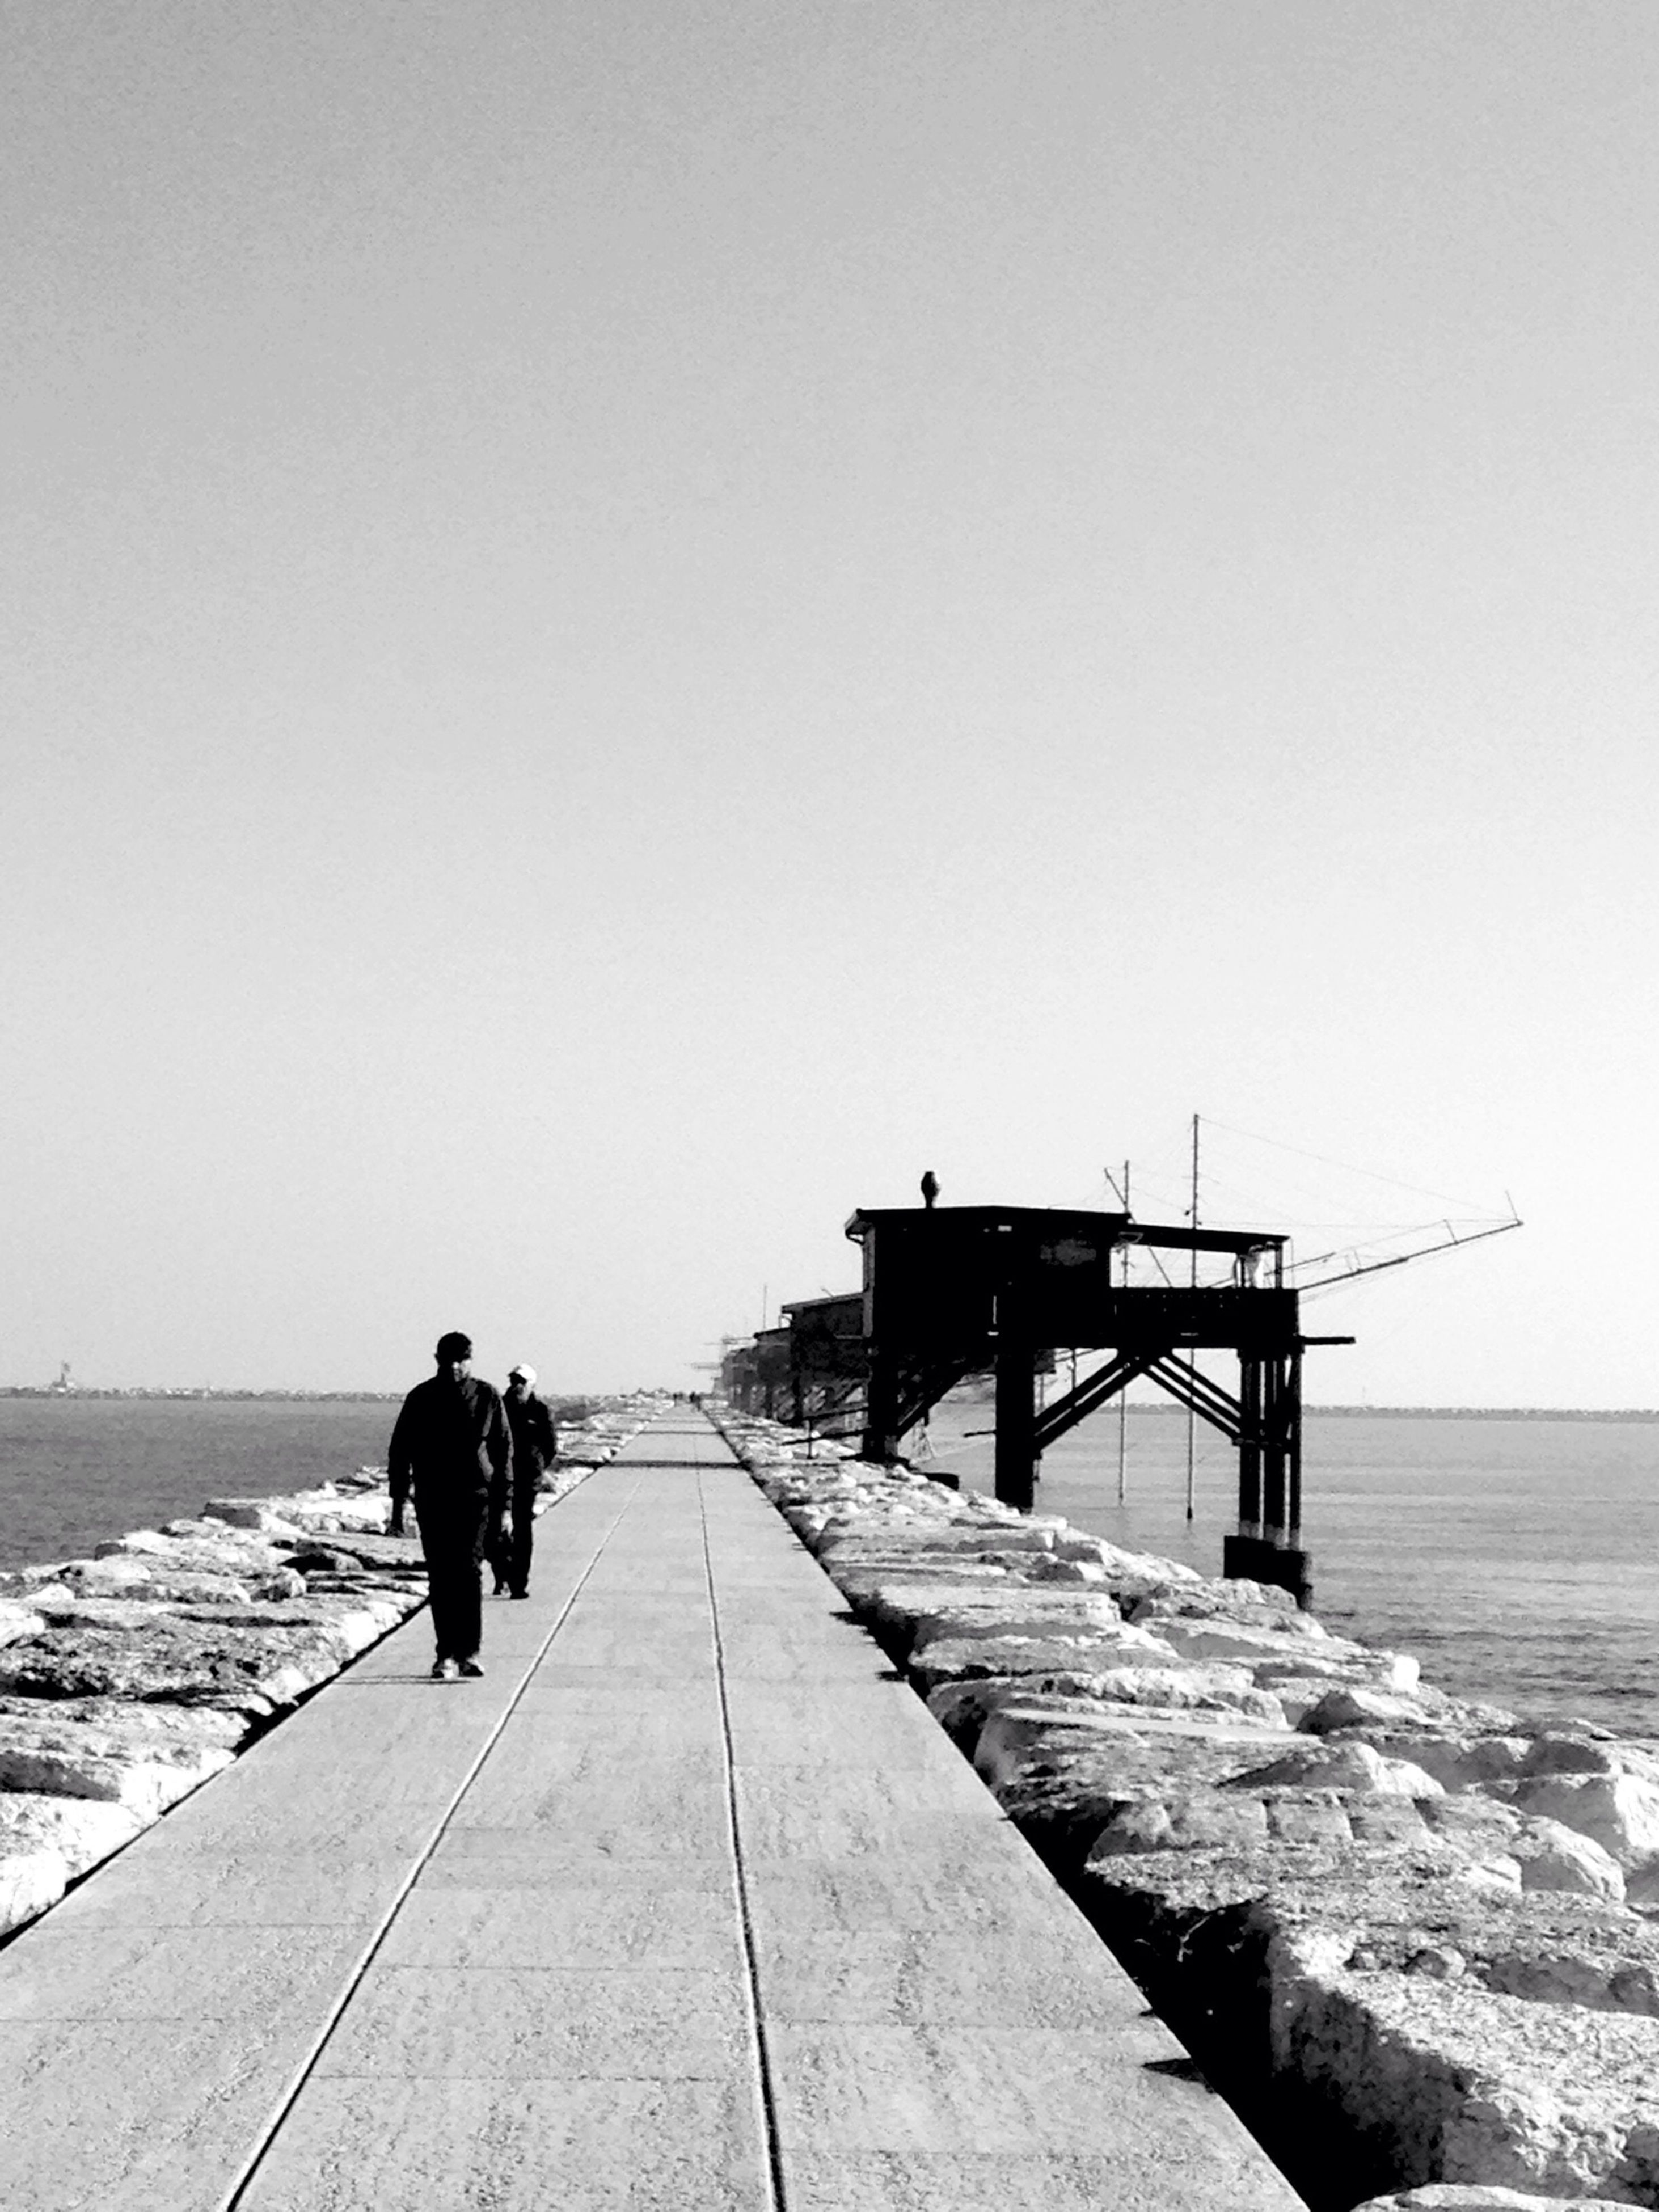 clear sky, sea, the way forward, copy space, water, horizon over water, pier, men, jetty, tranquil scene, tranquility, rear view, full length, nature, lifestyles, transportation, scenics, diminishing perspective